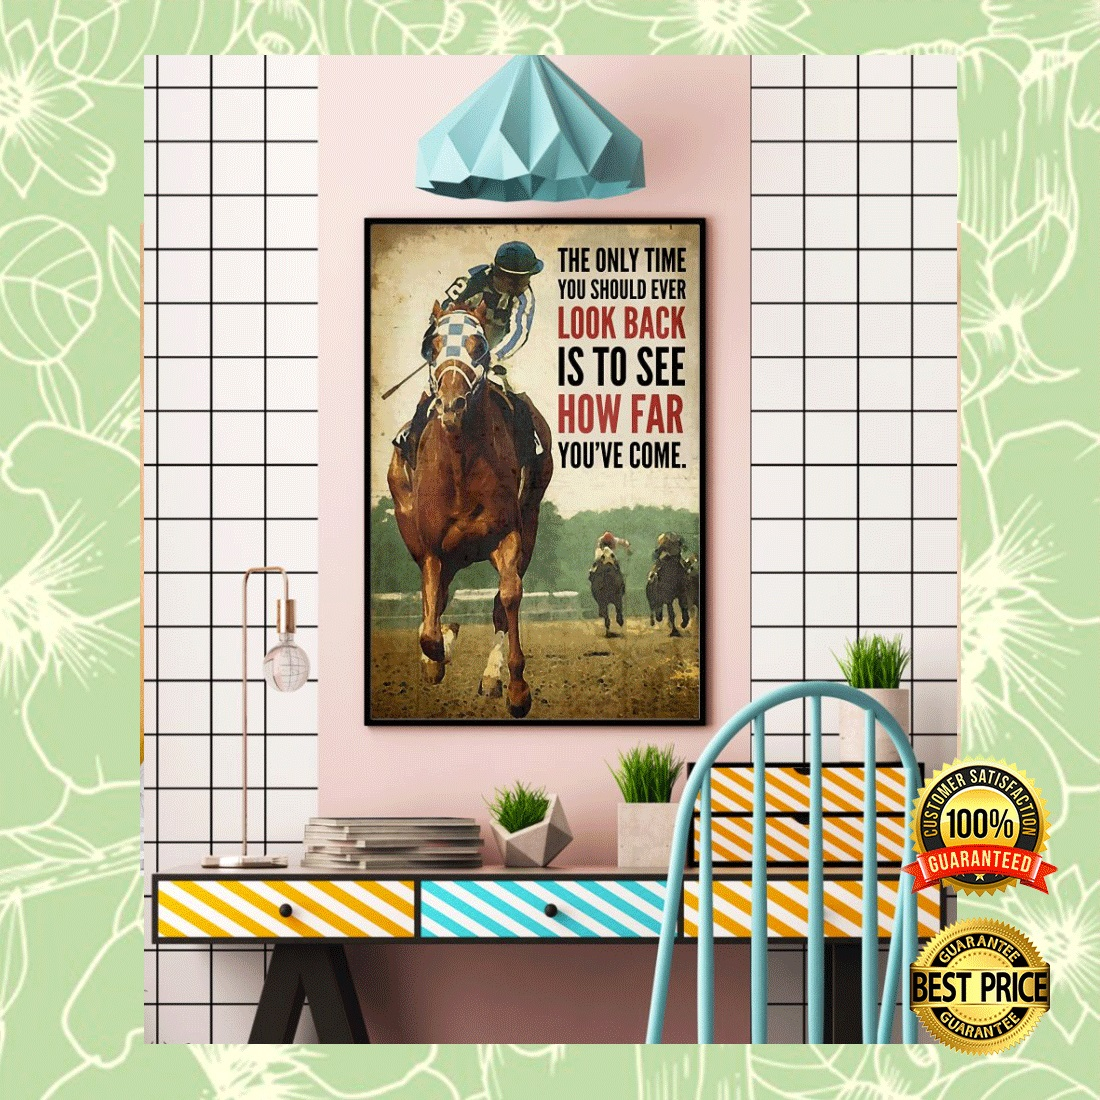 HORSE RACING THE ONLY TIME YOU SHOULD EVER LOOK BACK IS TO SEE HOW FAR YOU'VE COME POSTER 4